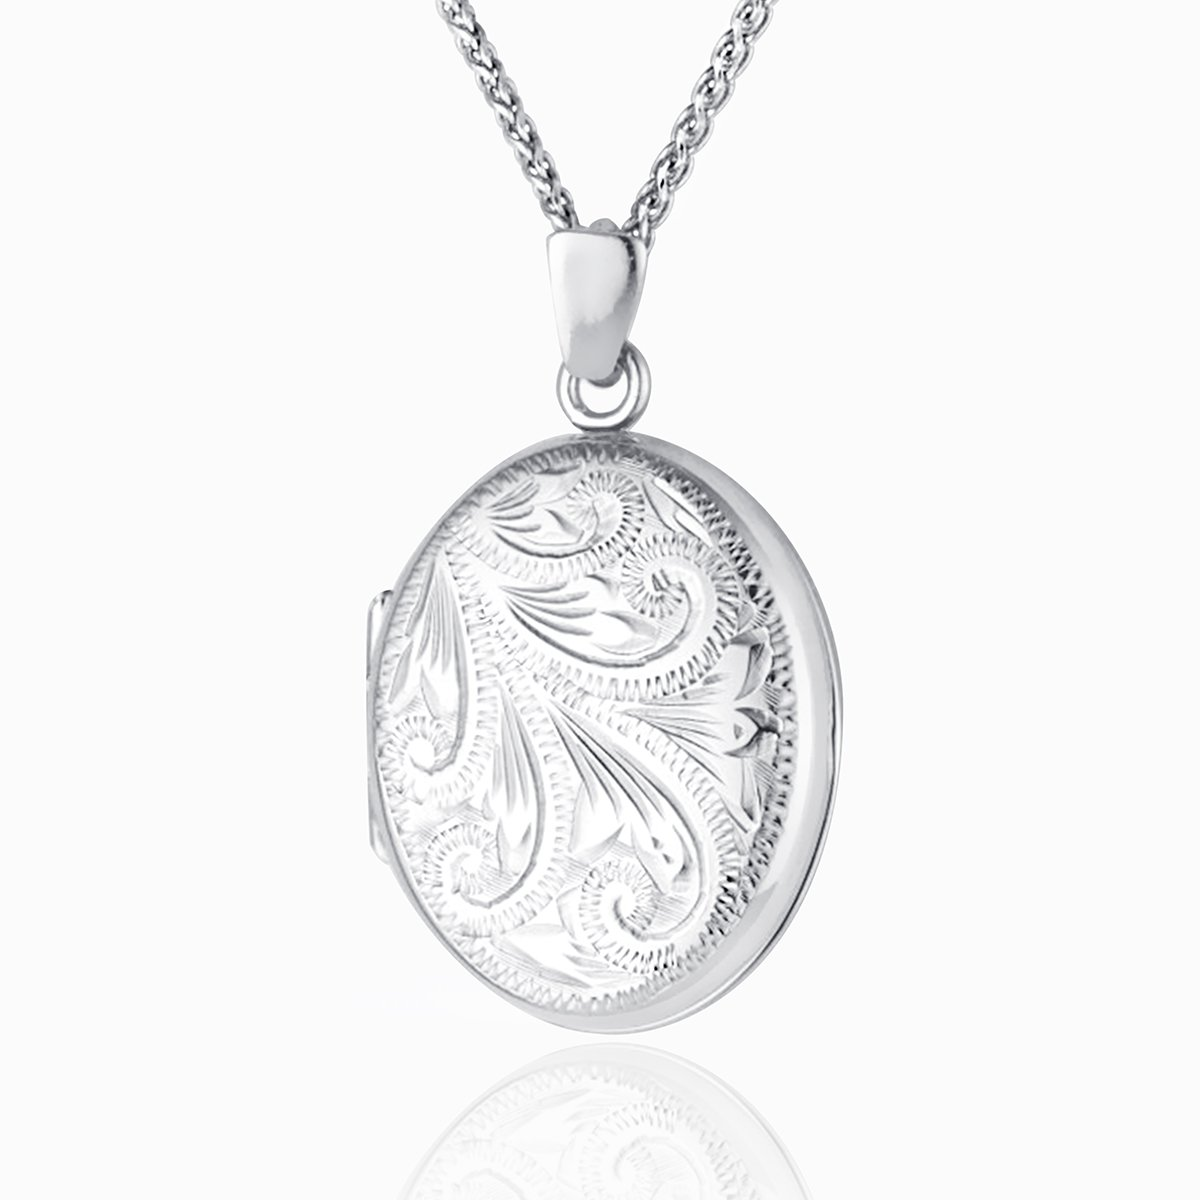 Product title: Hand Engraved White Gold Oval Locket, product type: Locket